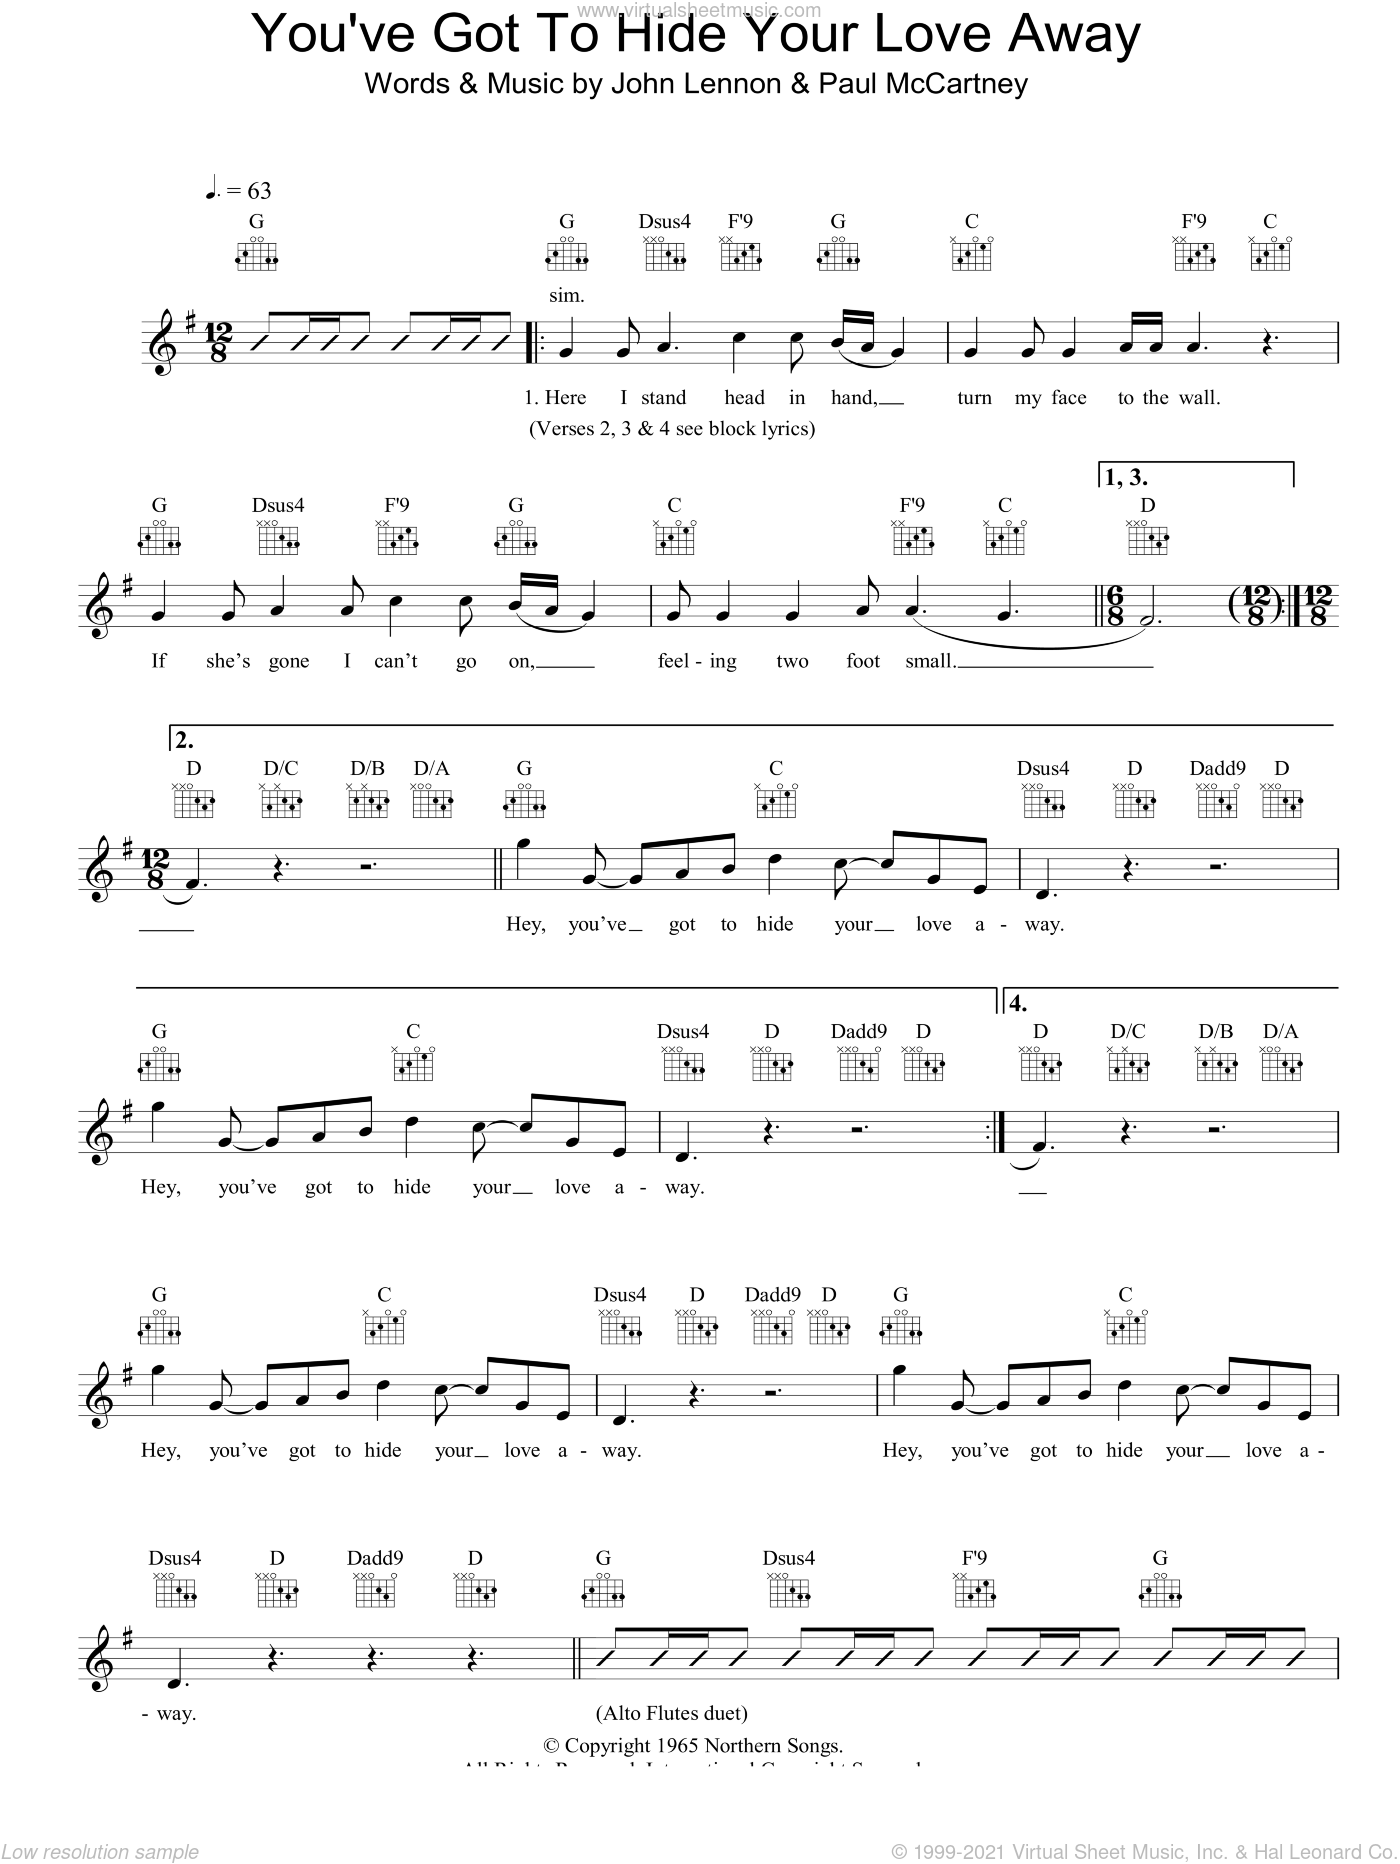 You've Got To Hide Your Love Away sheet music for voice and other instruments (fake book) by The Beatles, Barry Mann, Cynthia Weil, John Lennon, Paul McCartney and Phil Spector, intermediate skill level